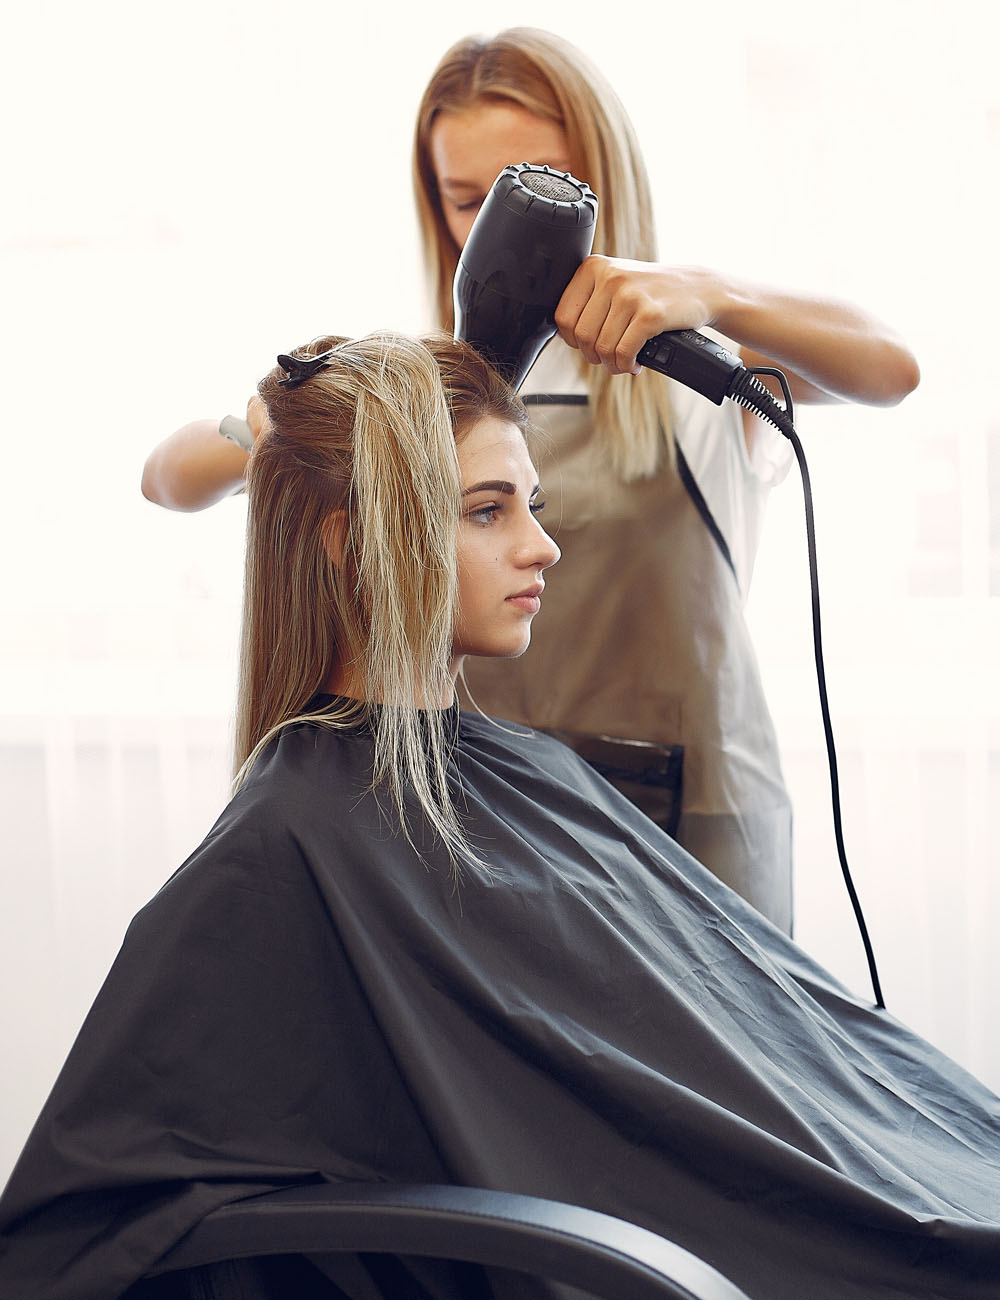 Hairdresser drying head her client. Woman in a hair salon